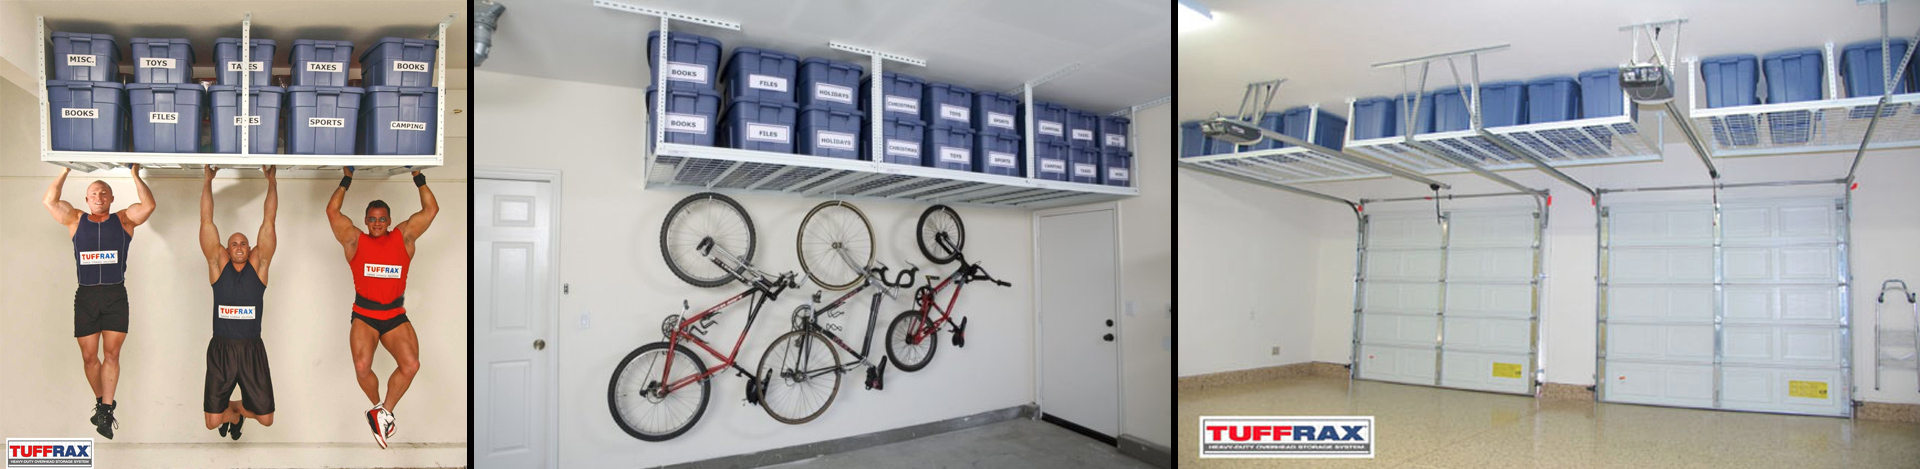 Garage storage solutions also overhead garage storage systems also best garage cabinets also best garage organizatio